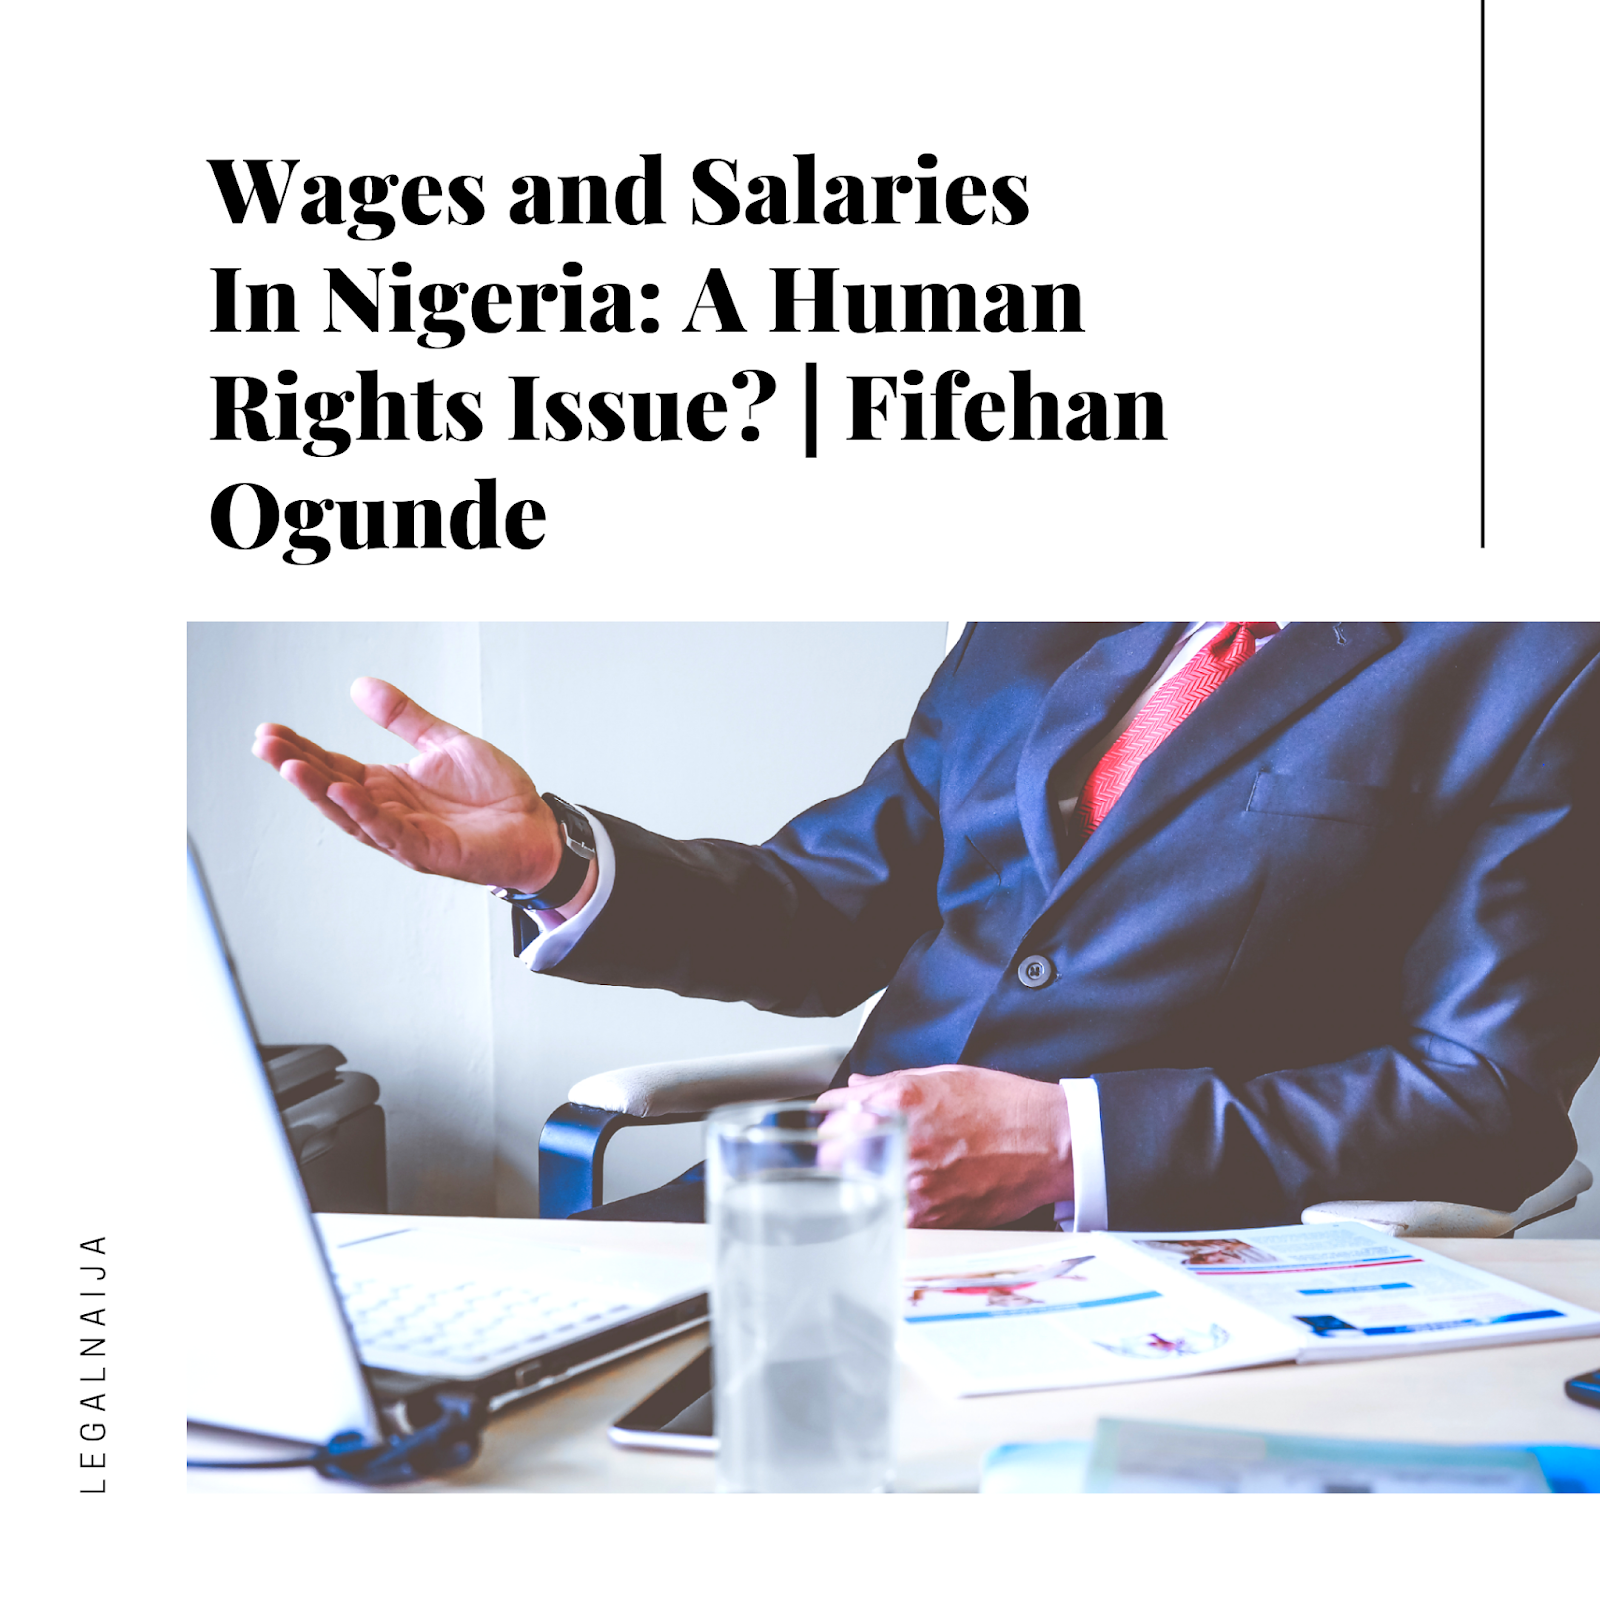 Wages and Salaries In Nigeria: A Human Rights Issue